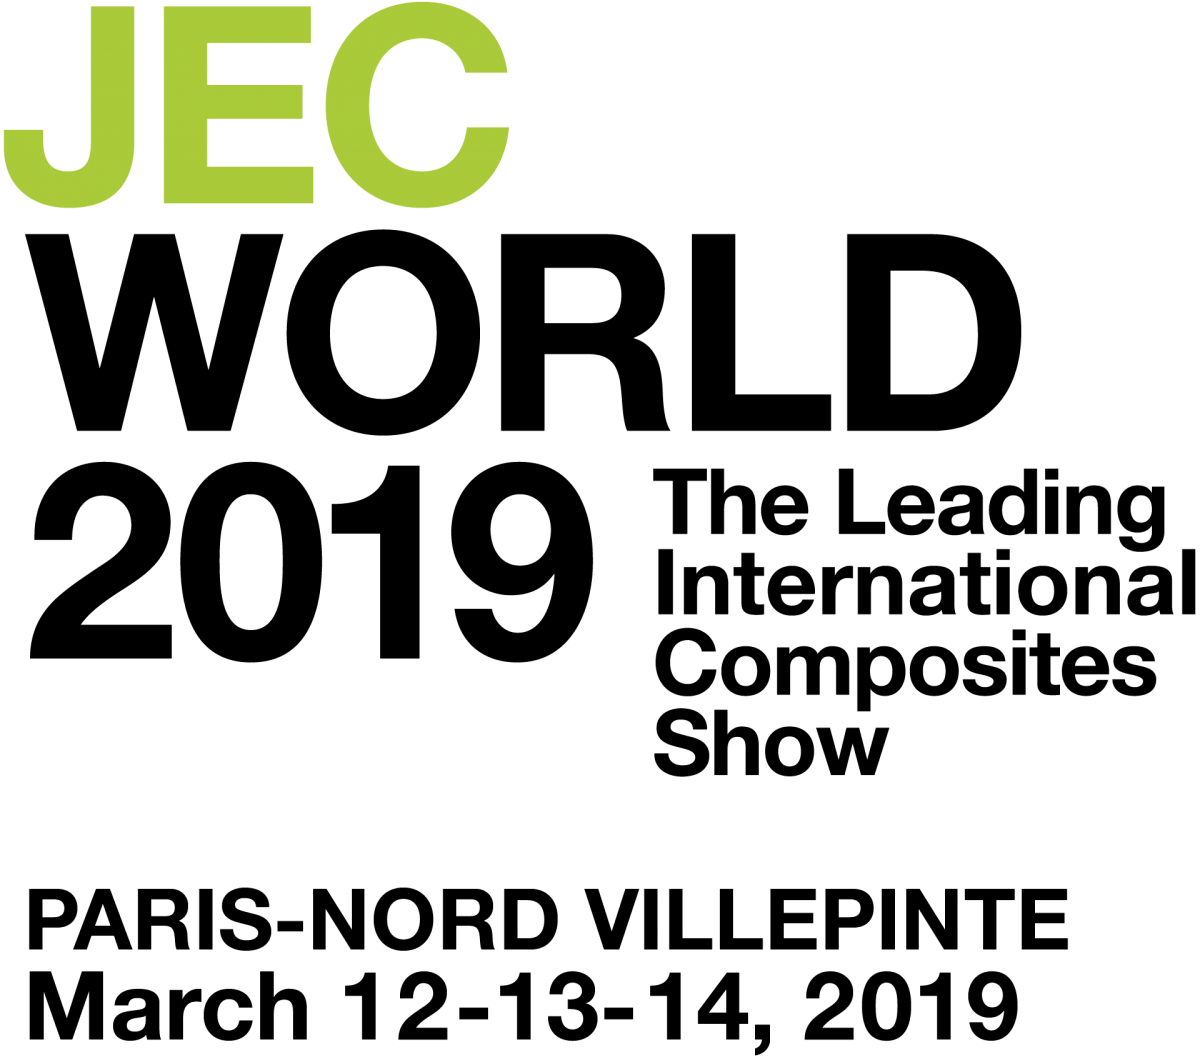 JEC, Paris – WIAM visits the world's largest trade fair for